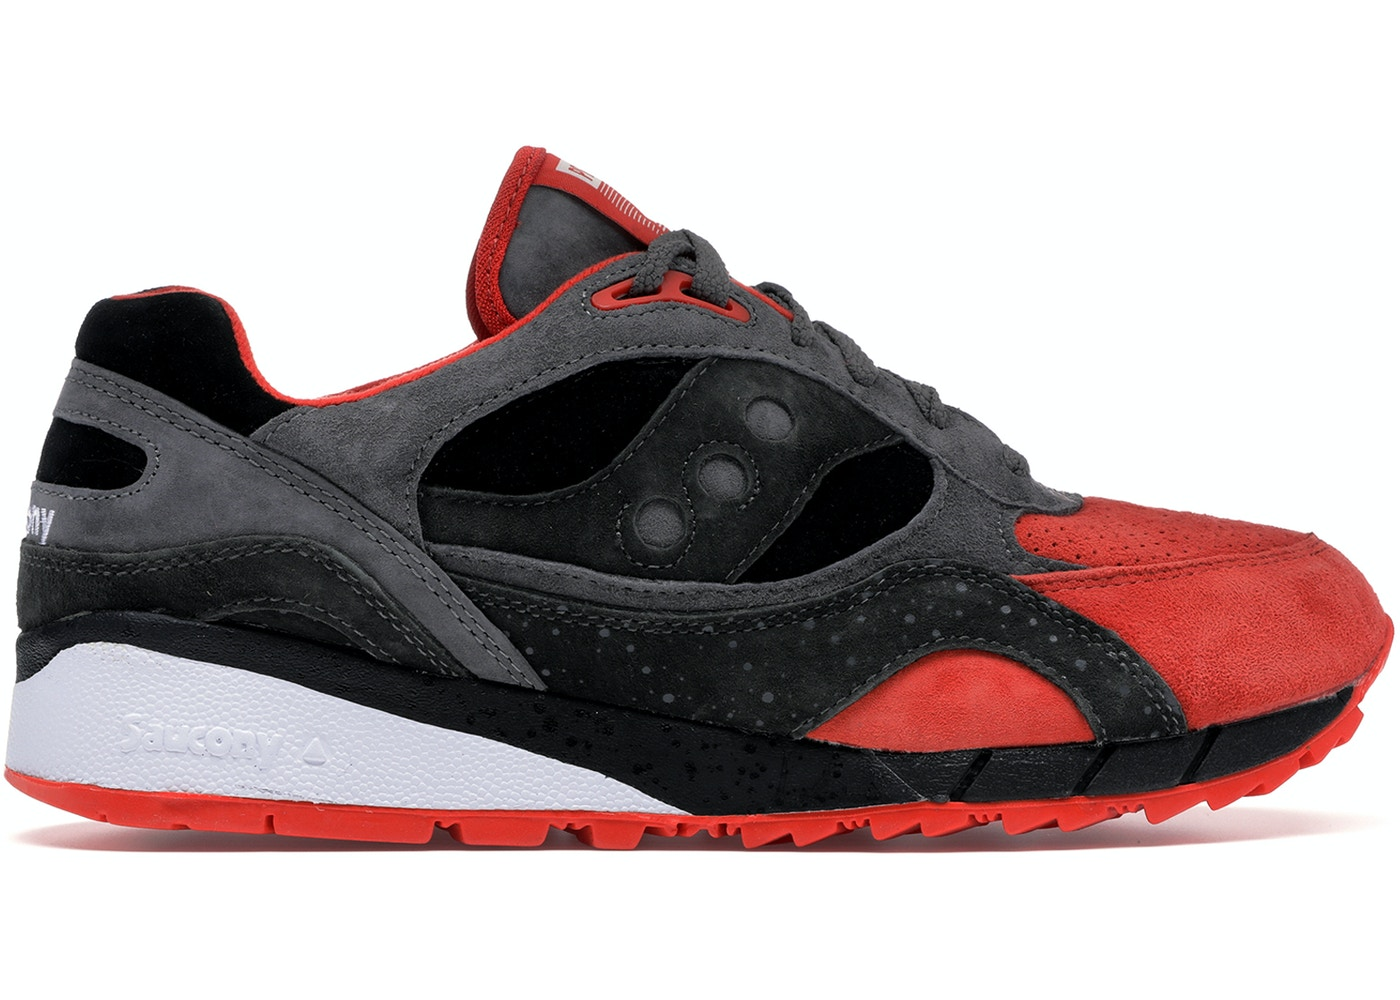 premium selection 7afd7 fc257 Saucony Shadow 6000 Premier Life on Mars Grey